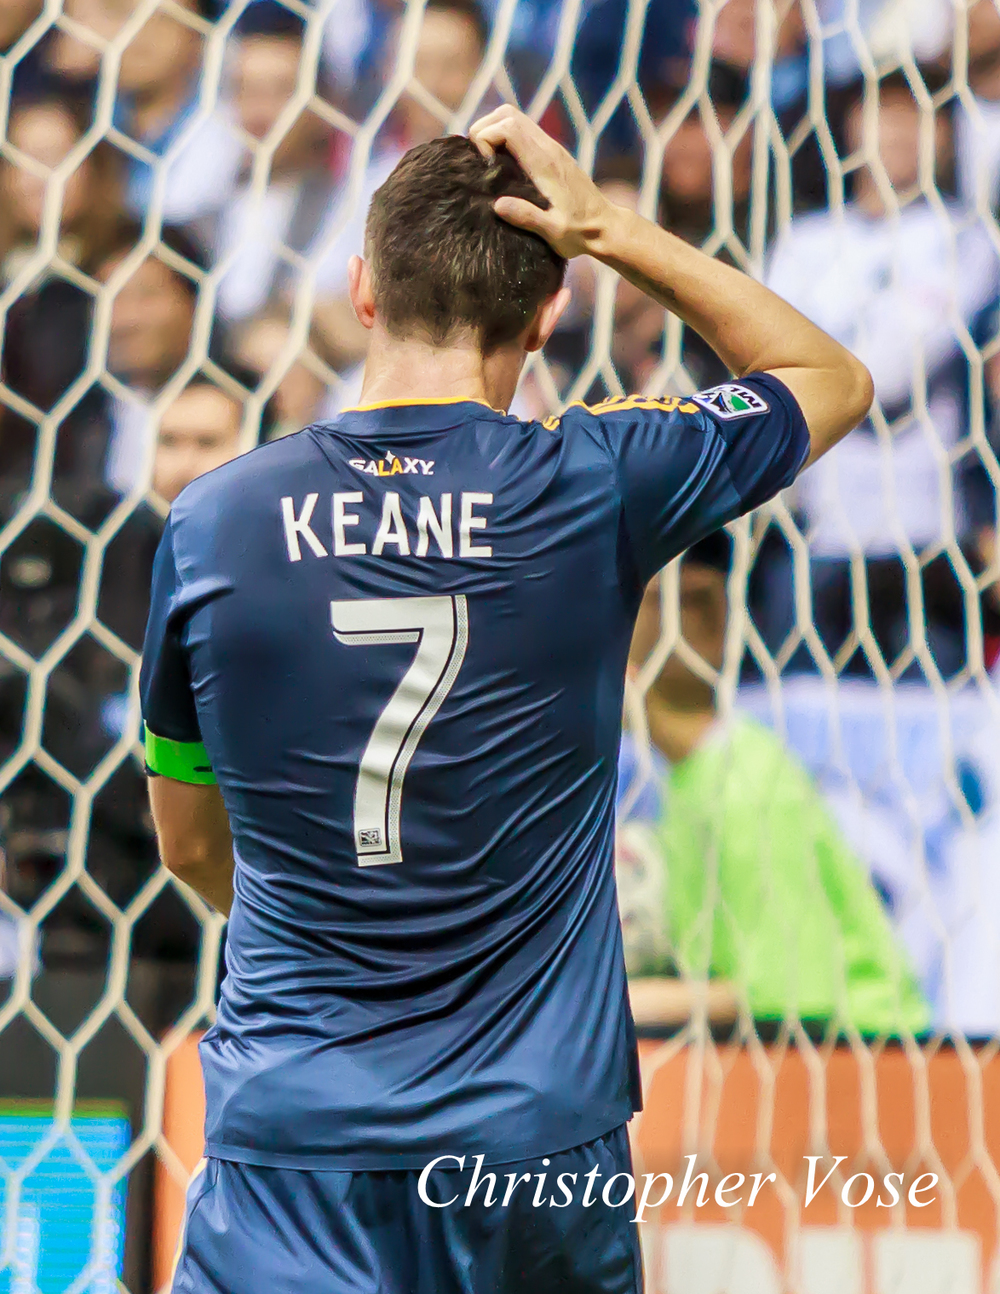 Robbie Keane at BC Place on 19 April 2014 after spending 90 minutes trying to help Landon Donovan become the leading goal scorer in MLS history.